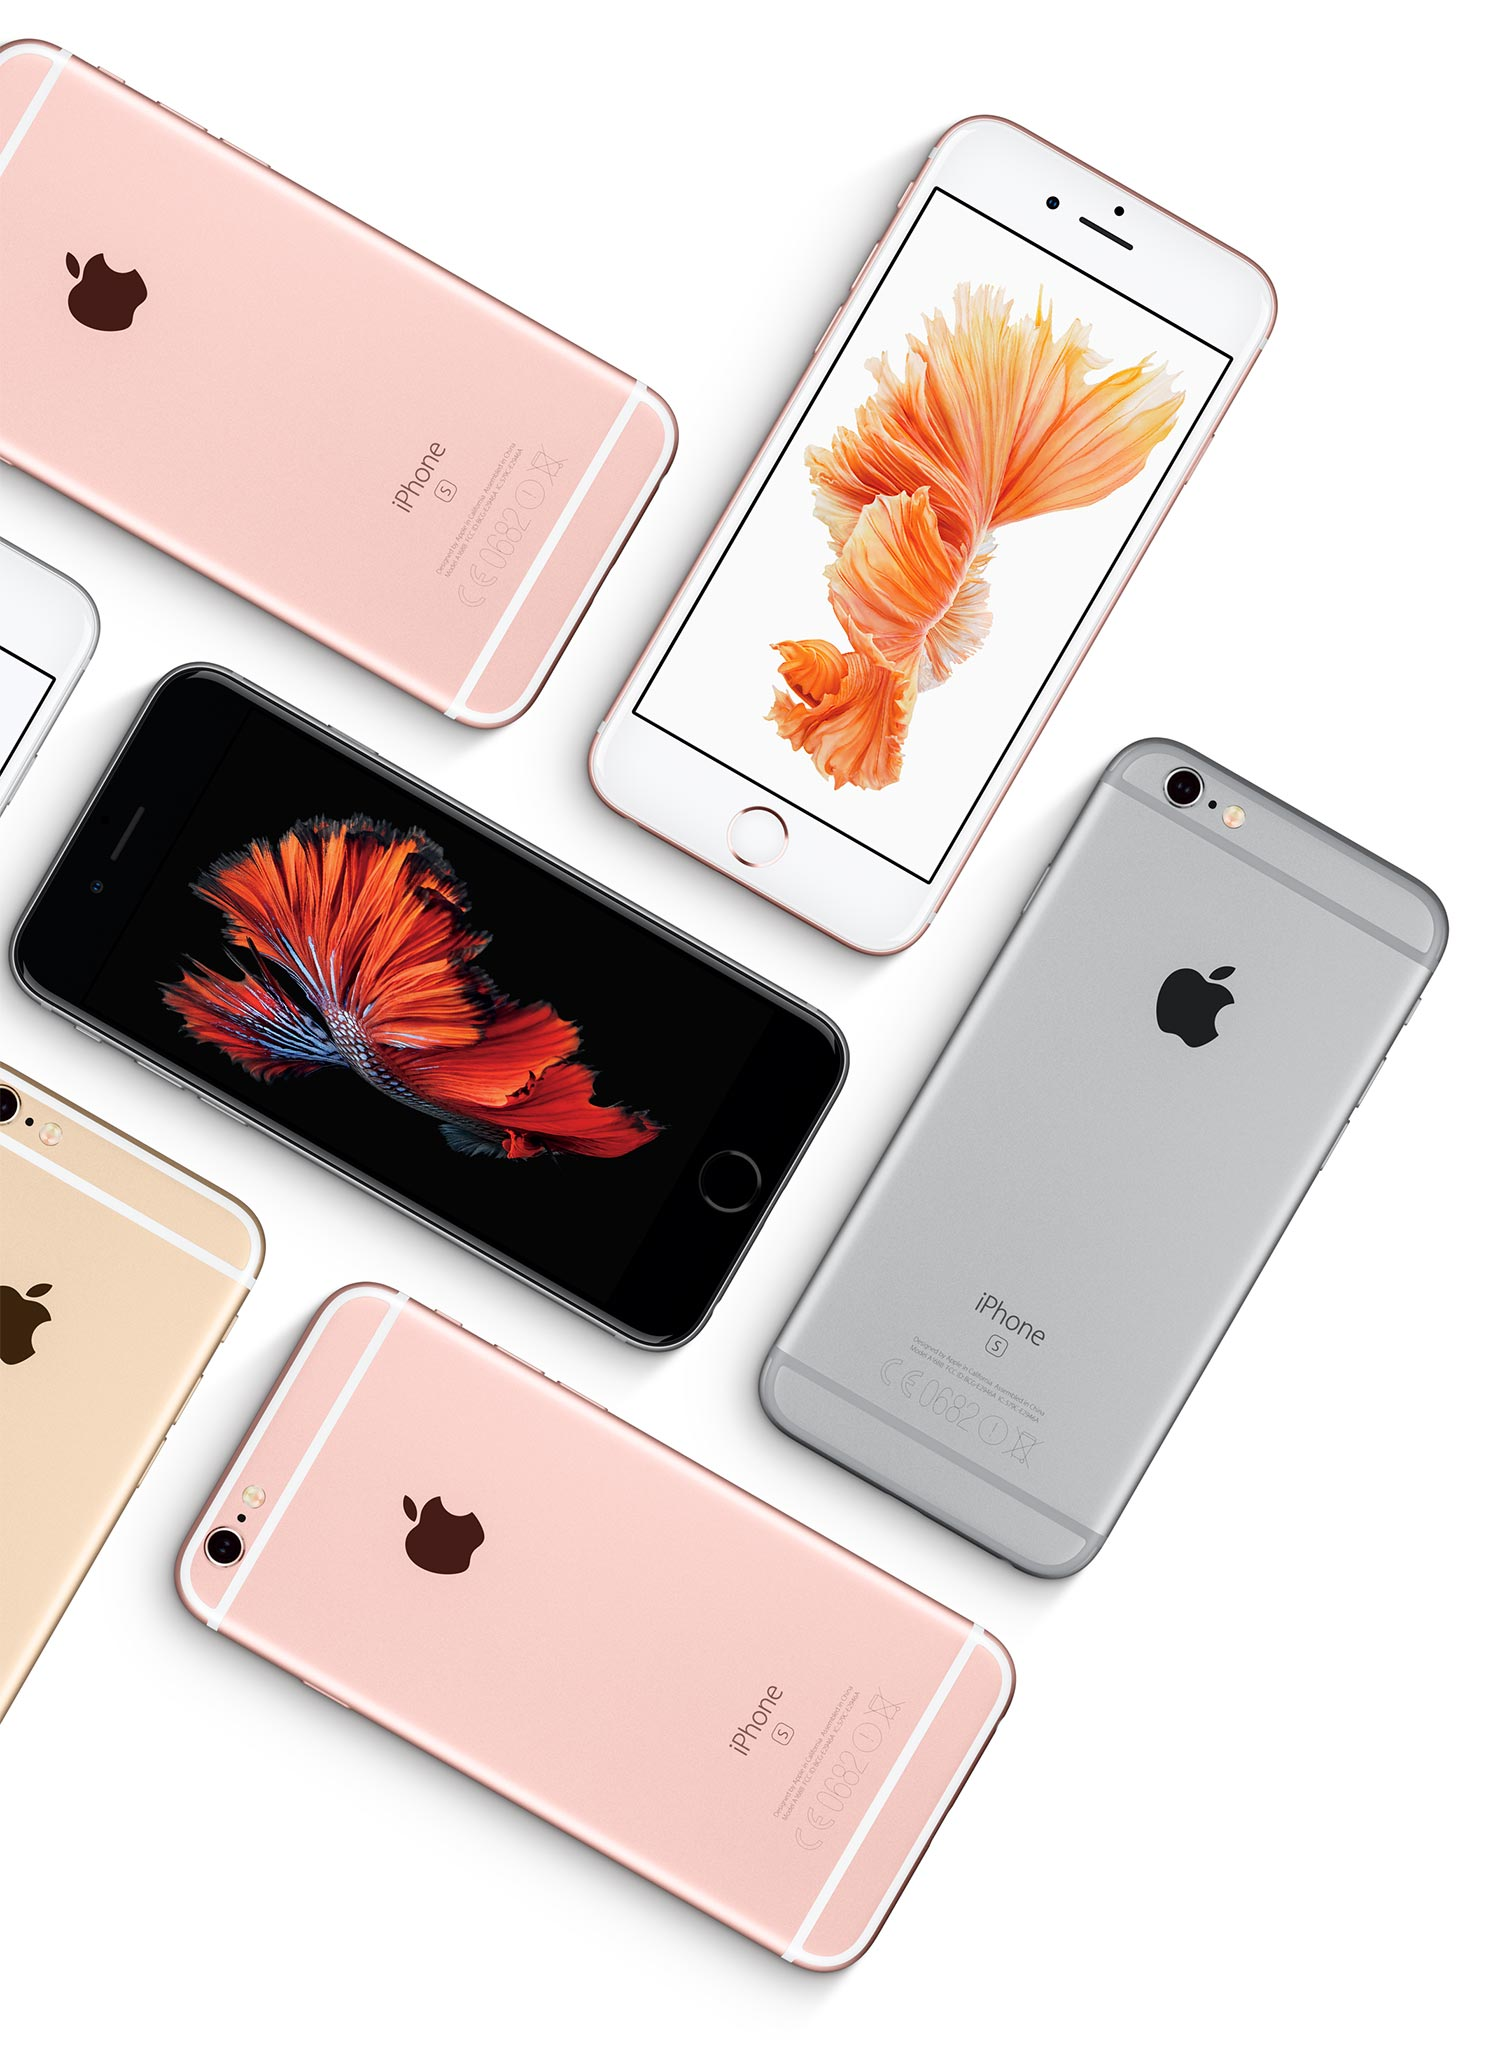 large iphone montage